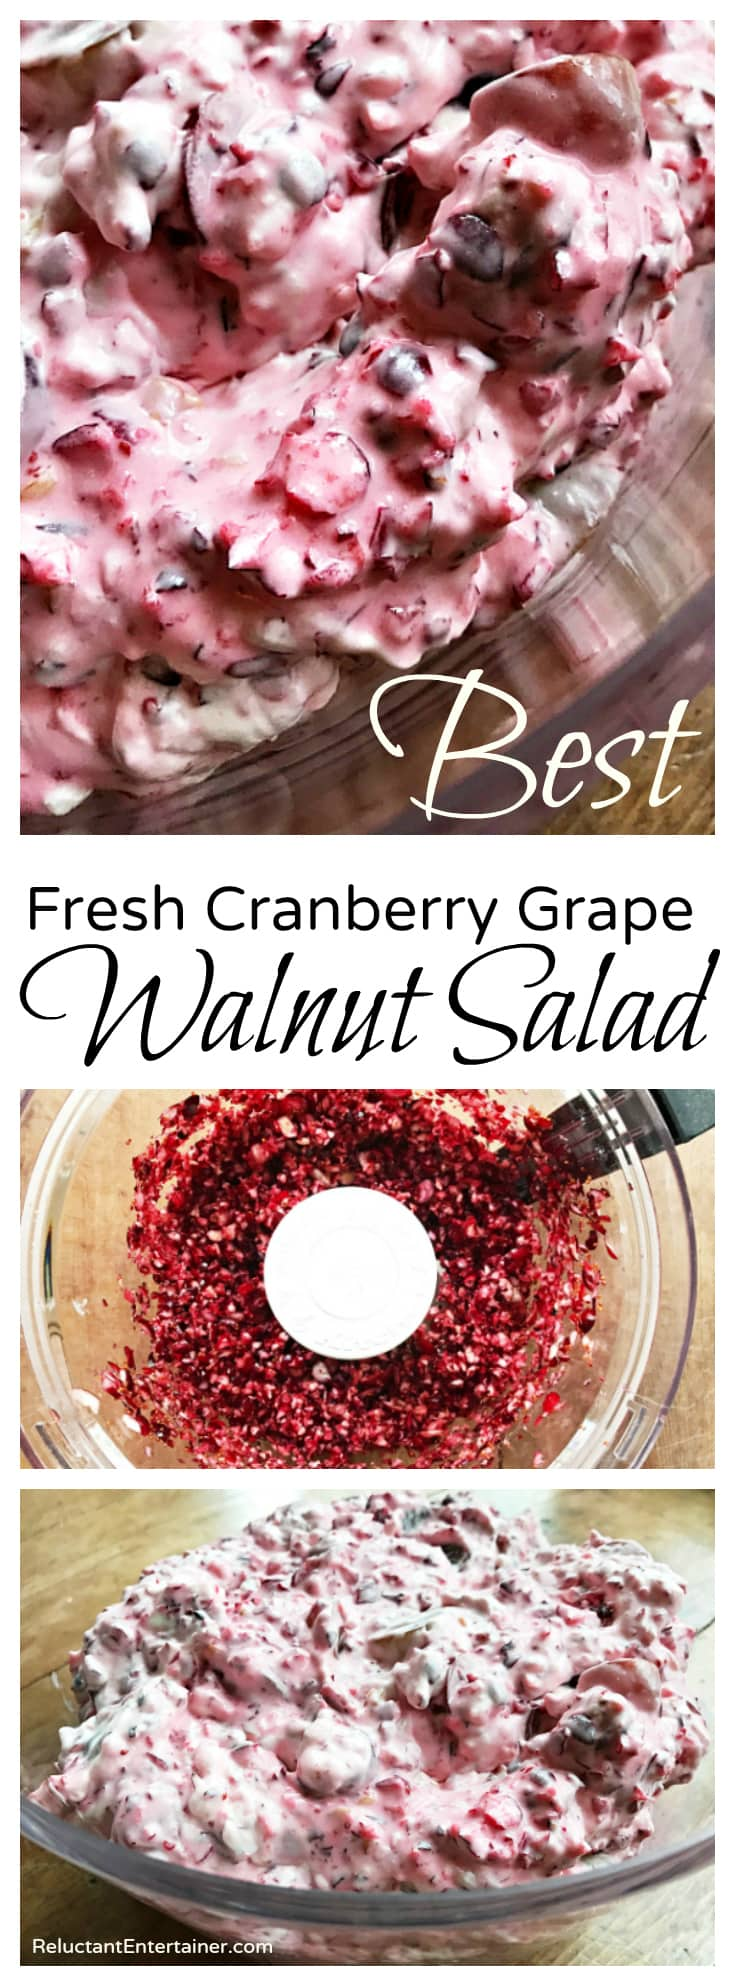 BEST Fresh Cranberry Grape Walnut Salad